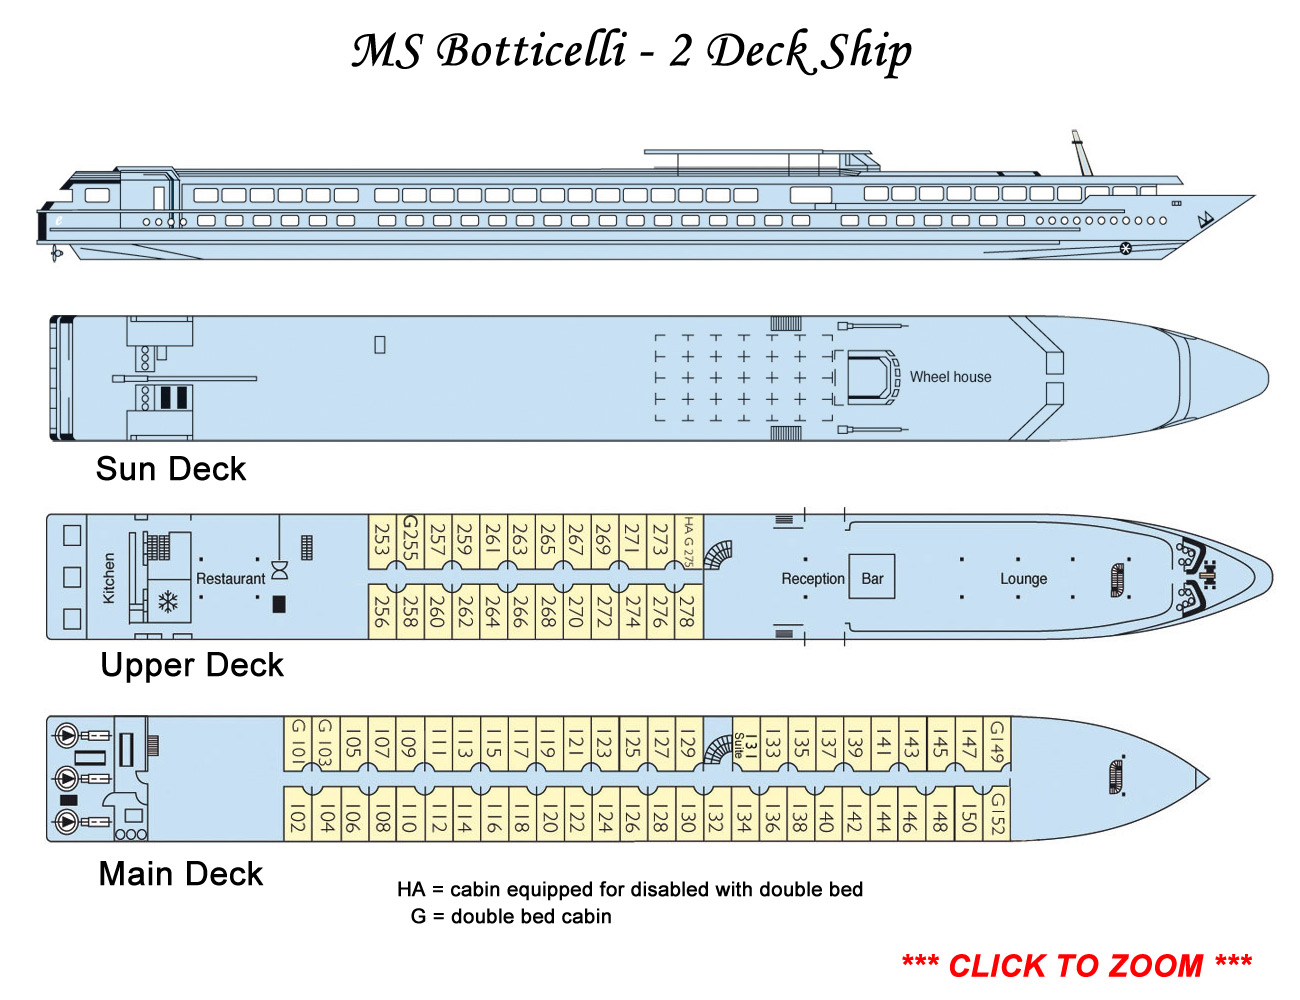 CroisiEurope SHIP MS BOTTICELLI furthermore Sitmar Fairsky Deck Plan likewise Mondrian South Beach additionally Polarlys furthermore Amel 64. on built in deck plans